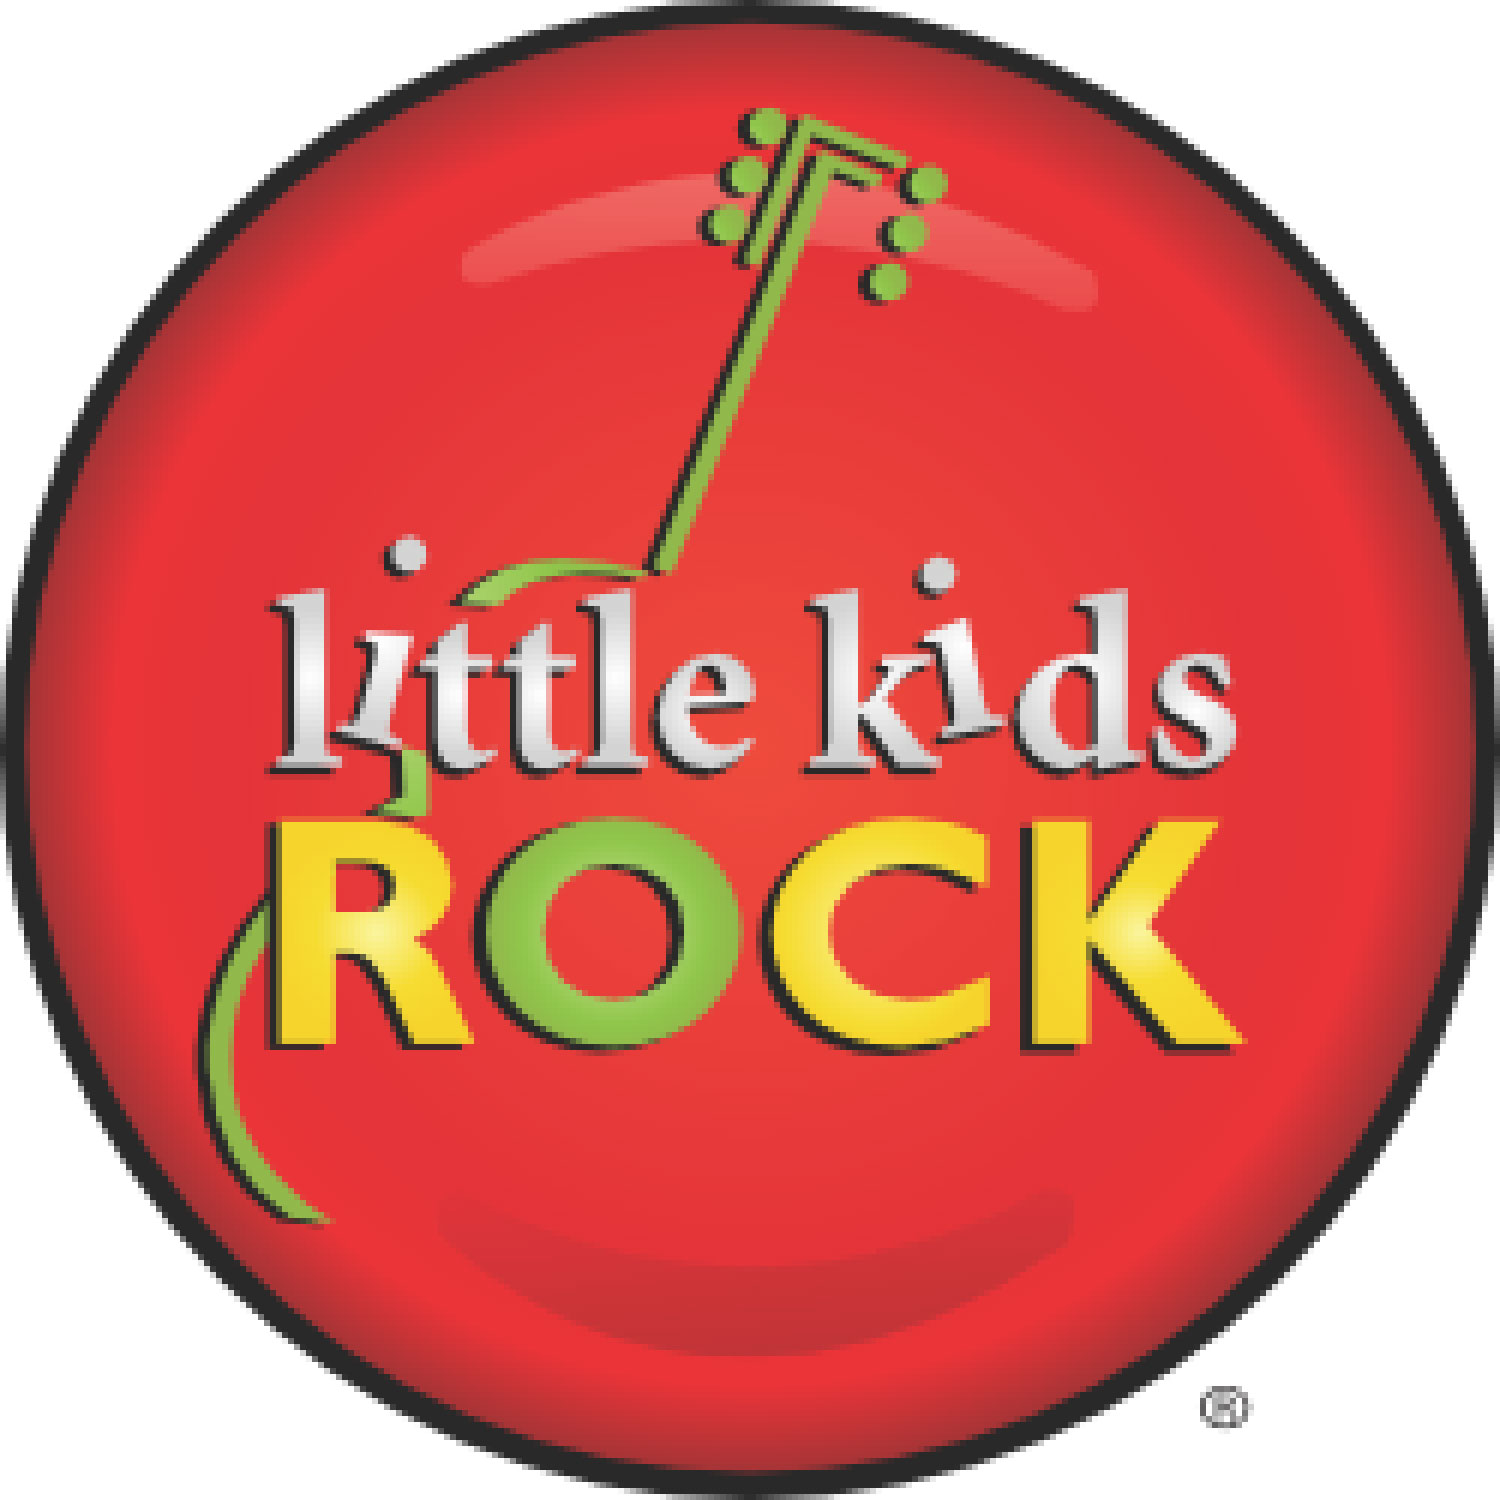 279fe659 Little Kids Rock: Music education charity in US public schools